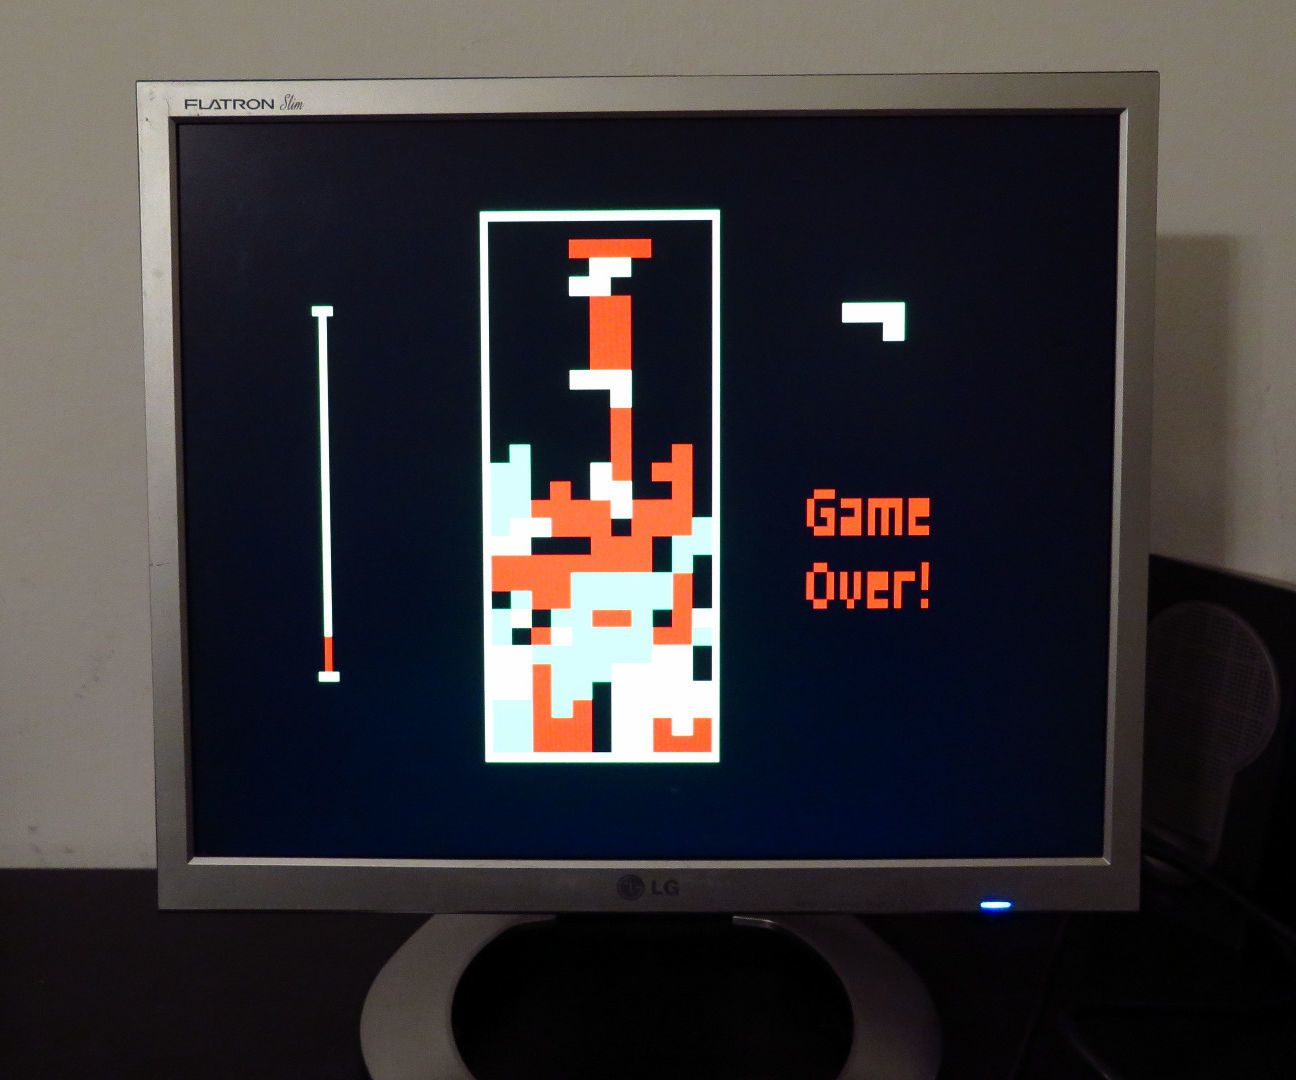 I have reproduced a color version of the classical game TETRIS running for a VGA monitor, by means of a bare Arduino Uno and few other components.The goal was to avoid any special shield or supporting IC. The only needed components are four buttons, few resistors and a DSUB15 connector. I used Arduino IDE 1.6.4. and the VGAx library done by Smaffer and publish on GitHub here. This library allows to use four color with a resolution of 120 x 60 pixels, not many but enough for this retro-game…